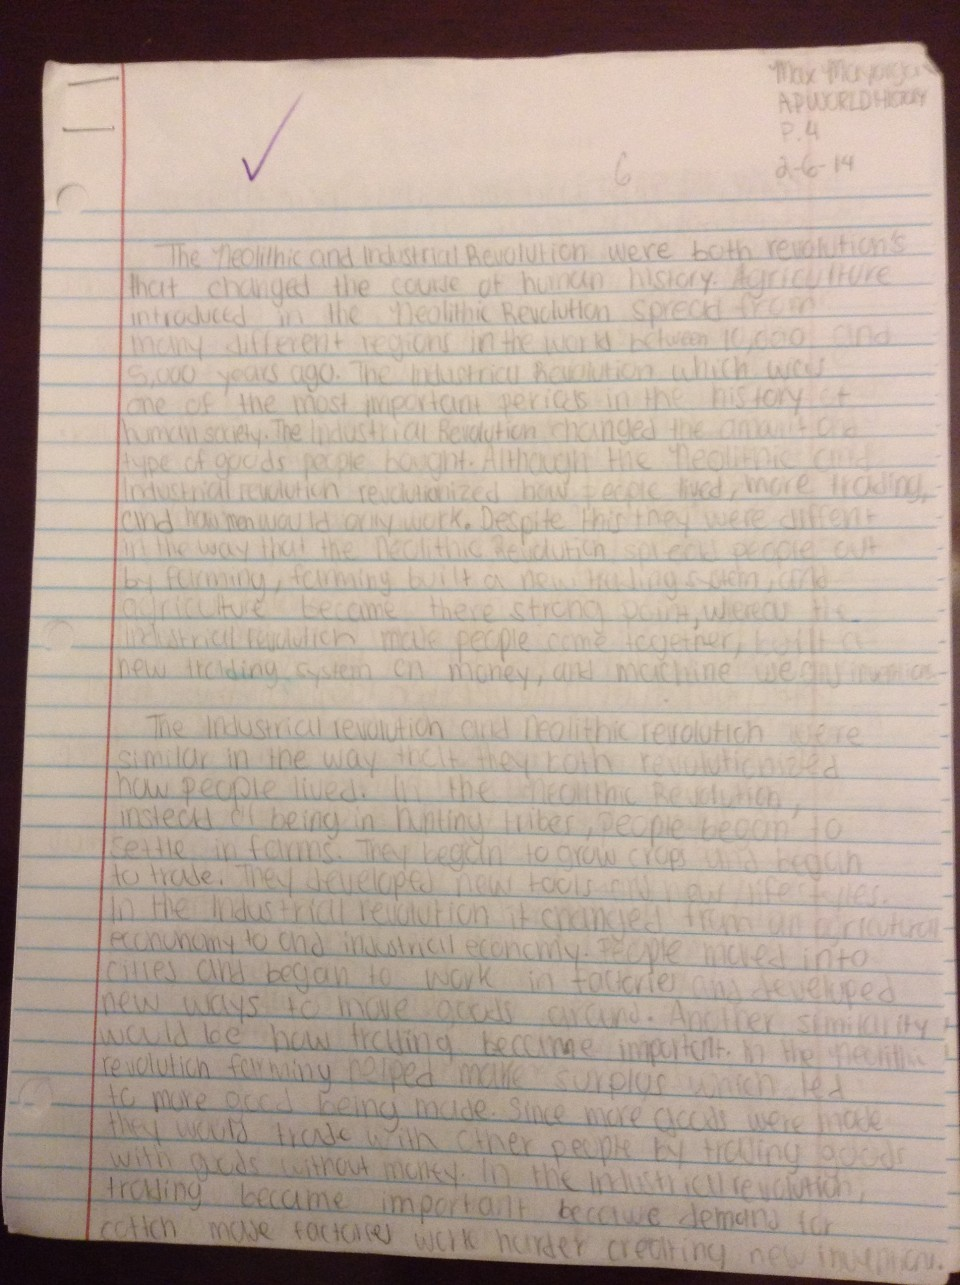 002 Image2010 Neolithic Revolution Essay Fearsome Agricultural Thematic And Industrial 960